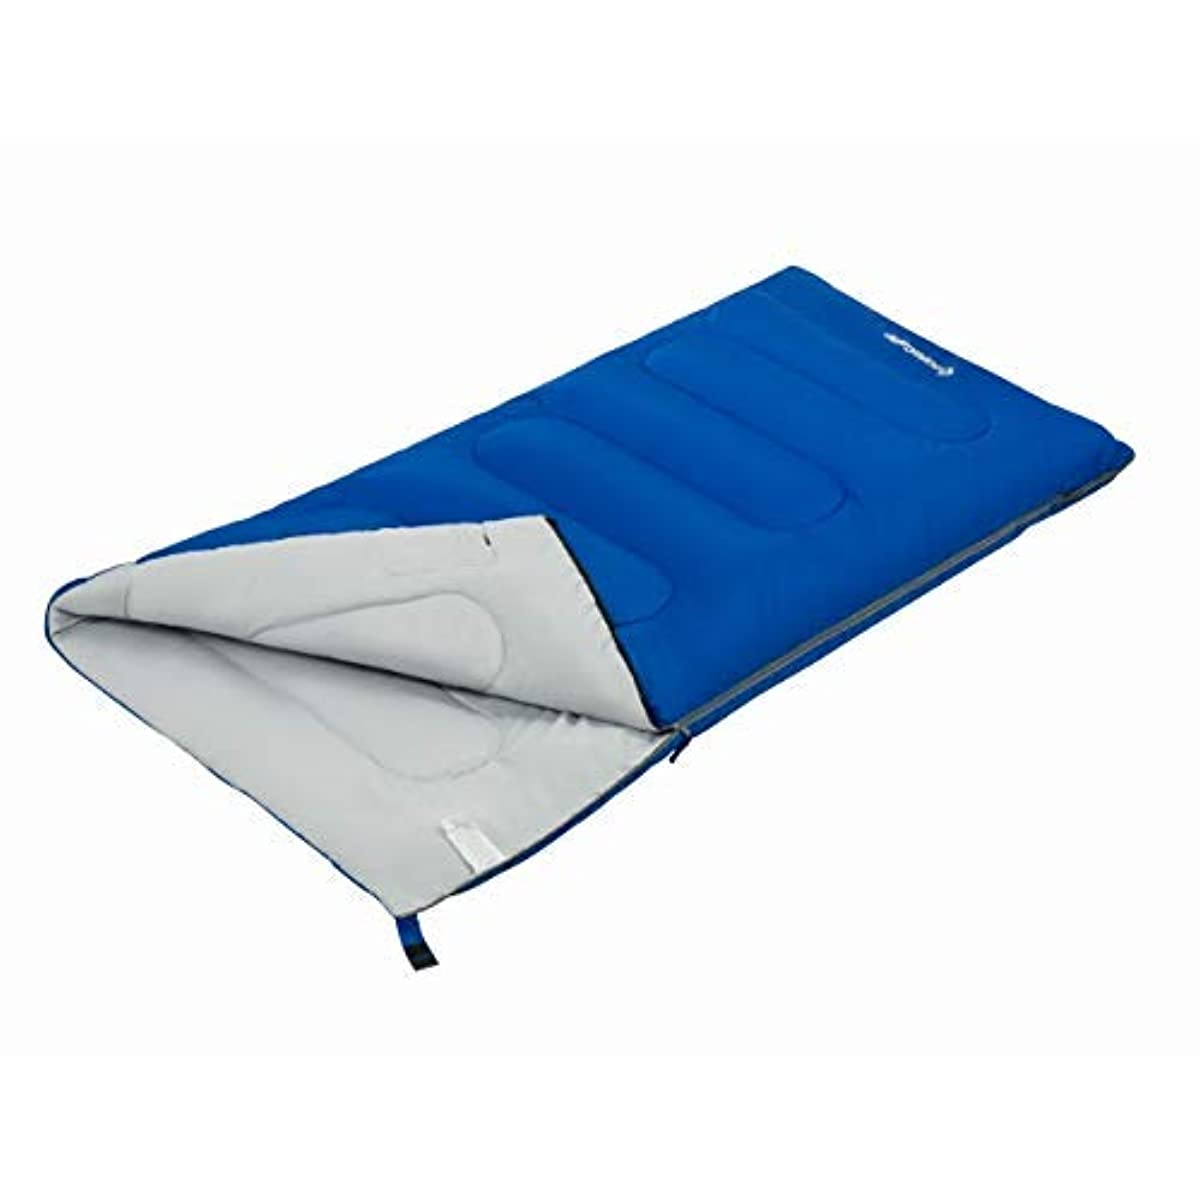 長々と対人香ばしいKingCamp Adults sleeping bag(寝袋) with Compression Sack- Lightweight Waterproof Envelope Warm 10.4f/-12c Oversize Extreme Wide, Great for Camping Hiking Traveling Outdoor Activities [並行輸入品]